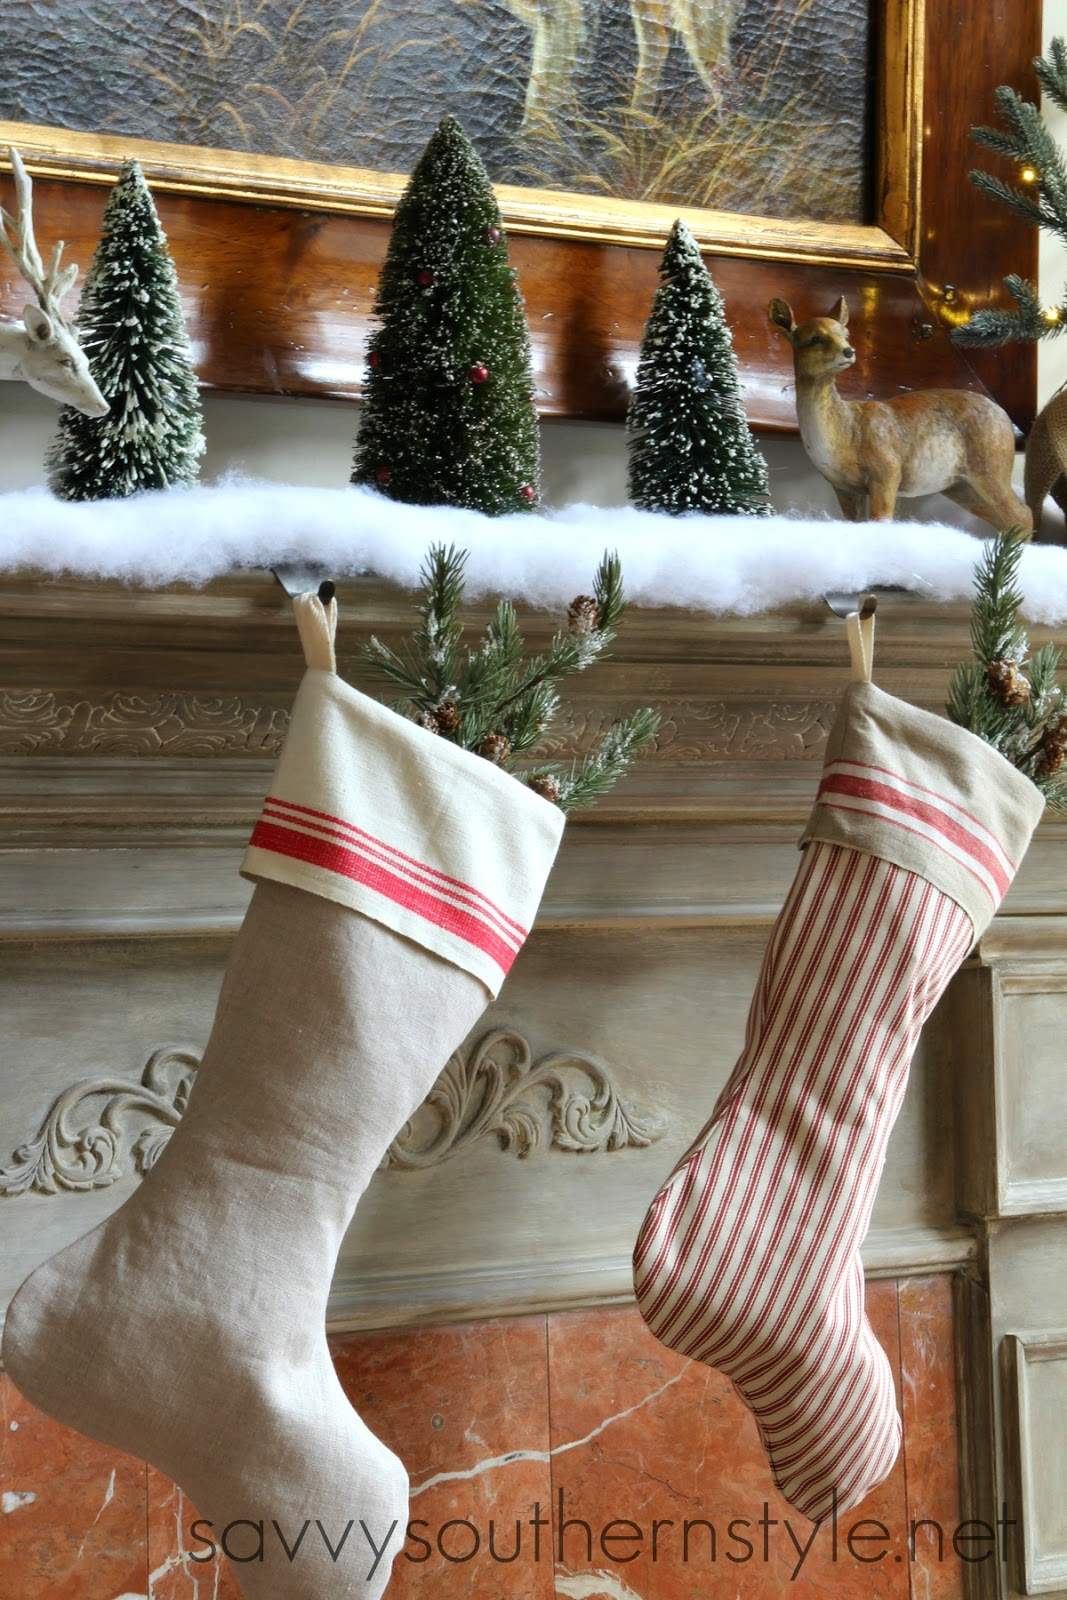 the and stockings pottery at holidays tree decorating associates service will following now barn barns do offering includes it a starts christmas for is with that